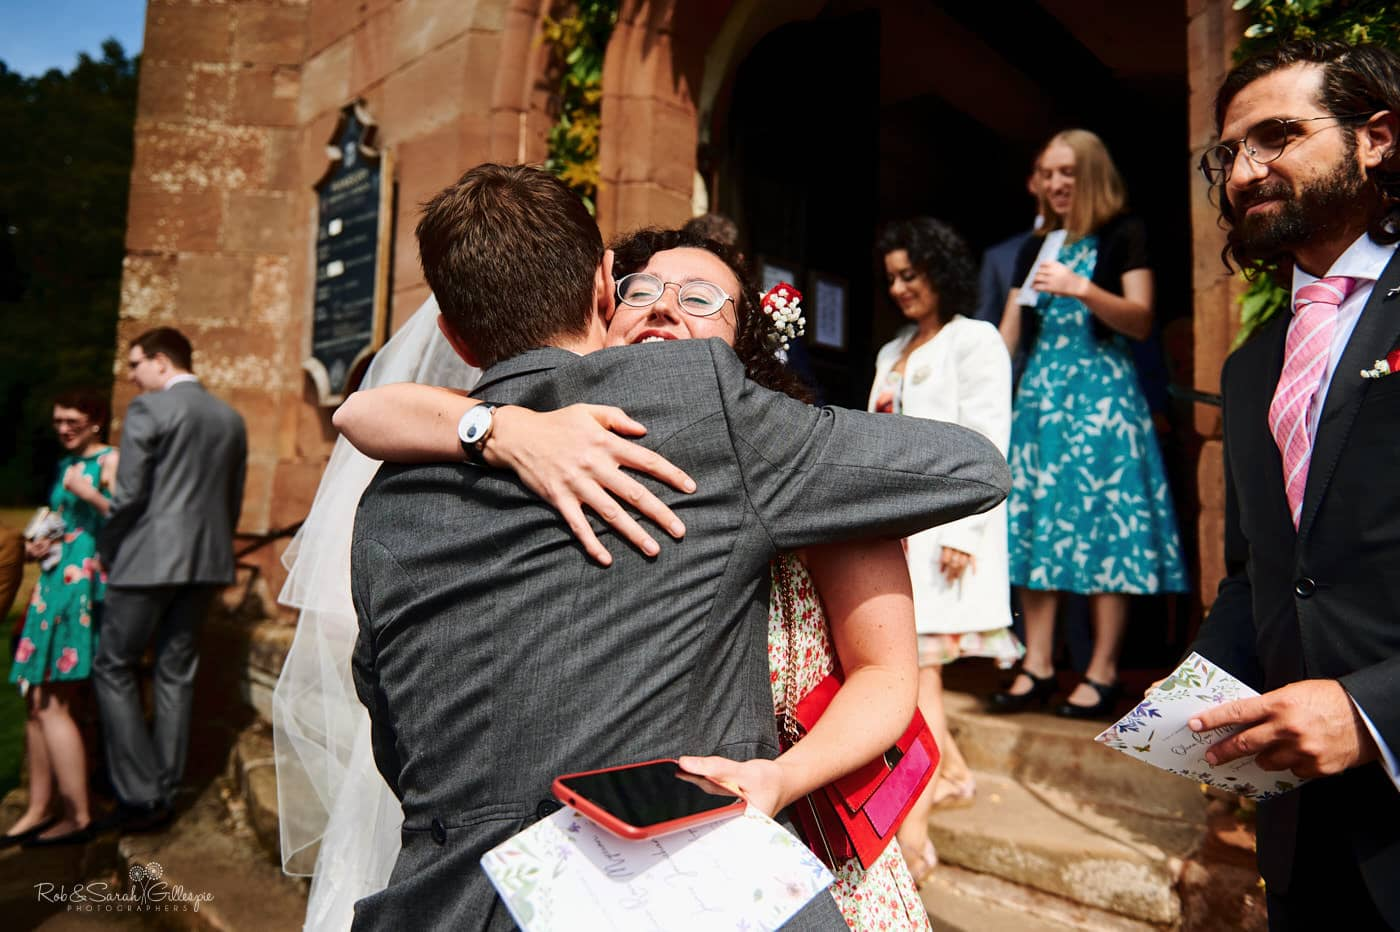 Weddings guests congratulate bride and groom after wedding service